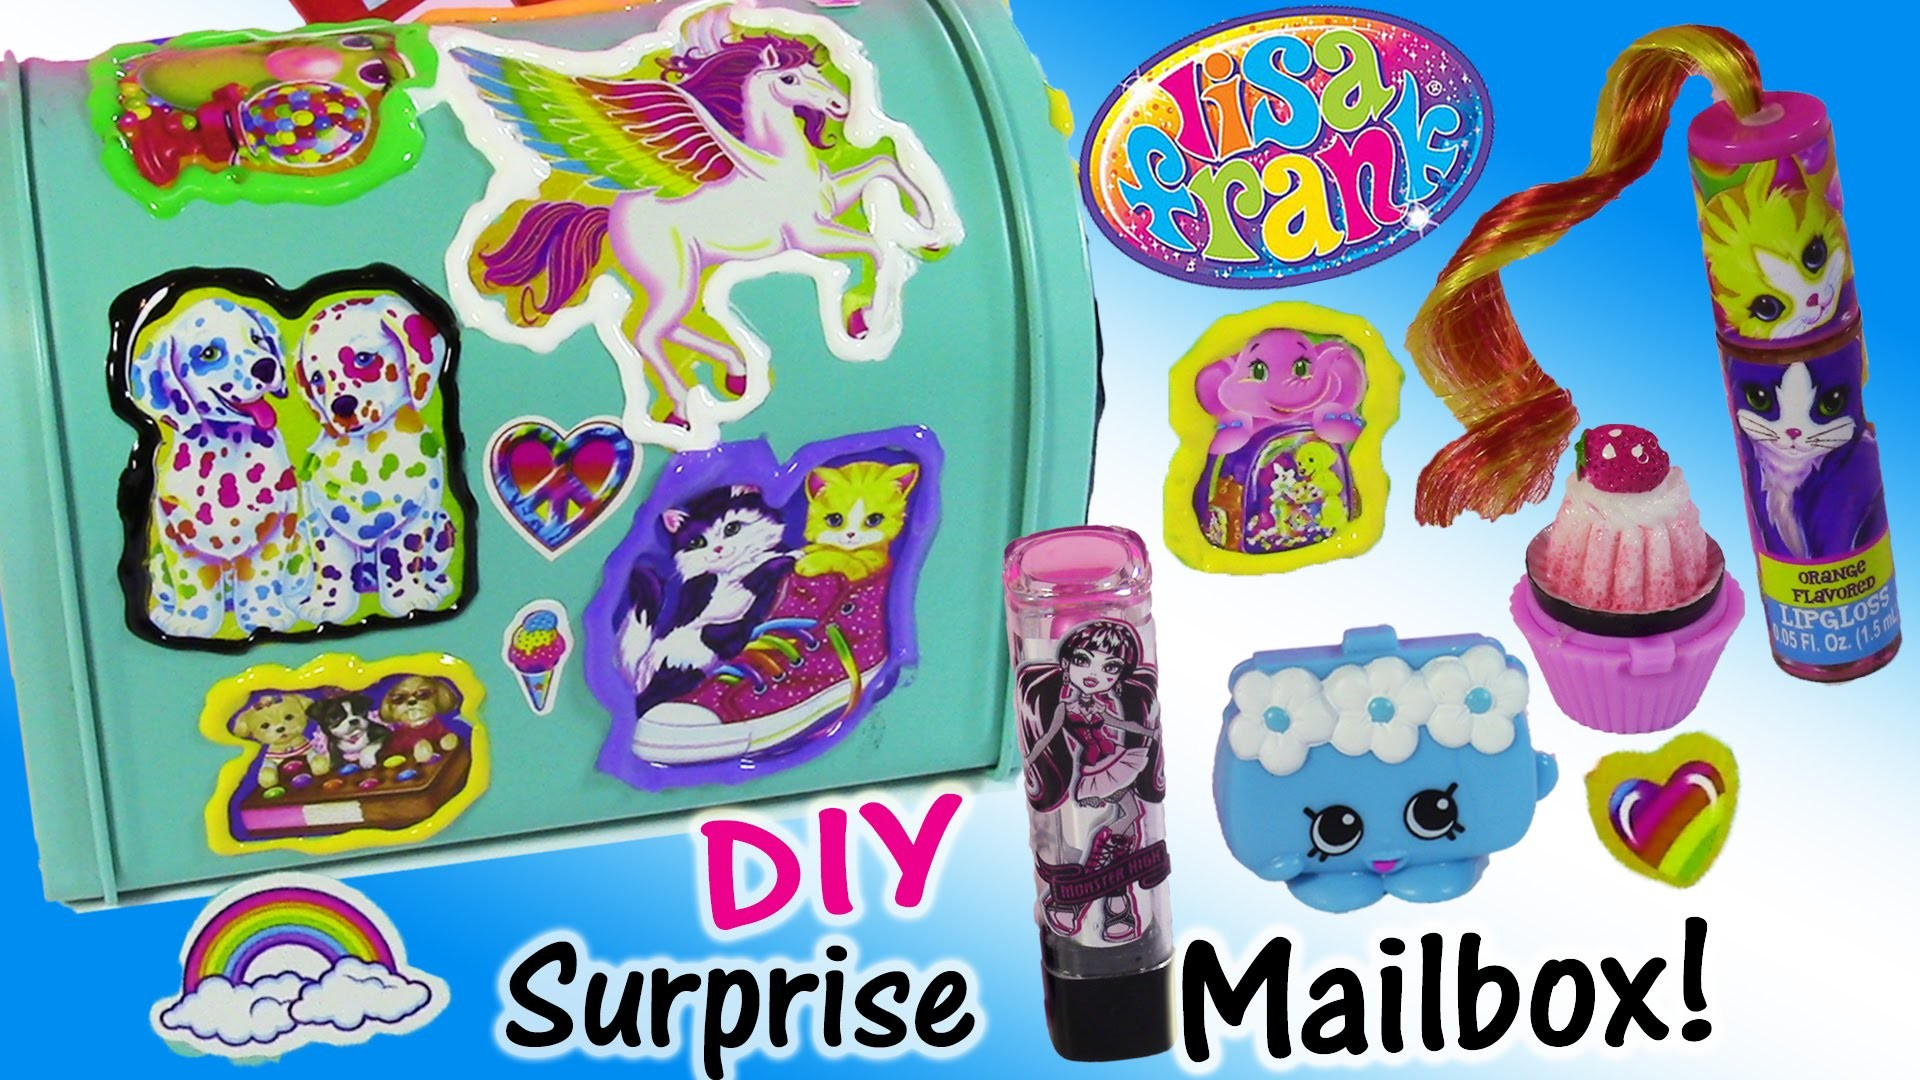 DIY Lisa Frank Surprise Mailbox! Decorate with Stickers & PUFFY Paint! Lip  Gloss SHOPKINS! – YouTube